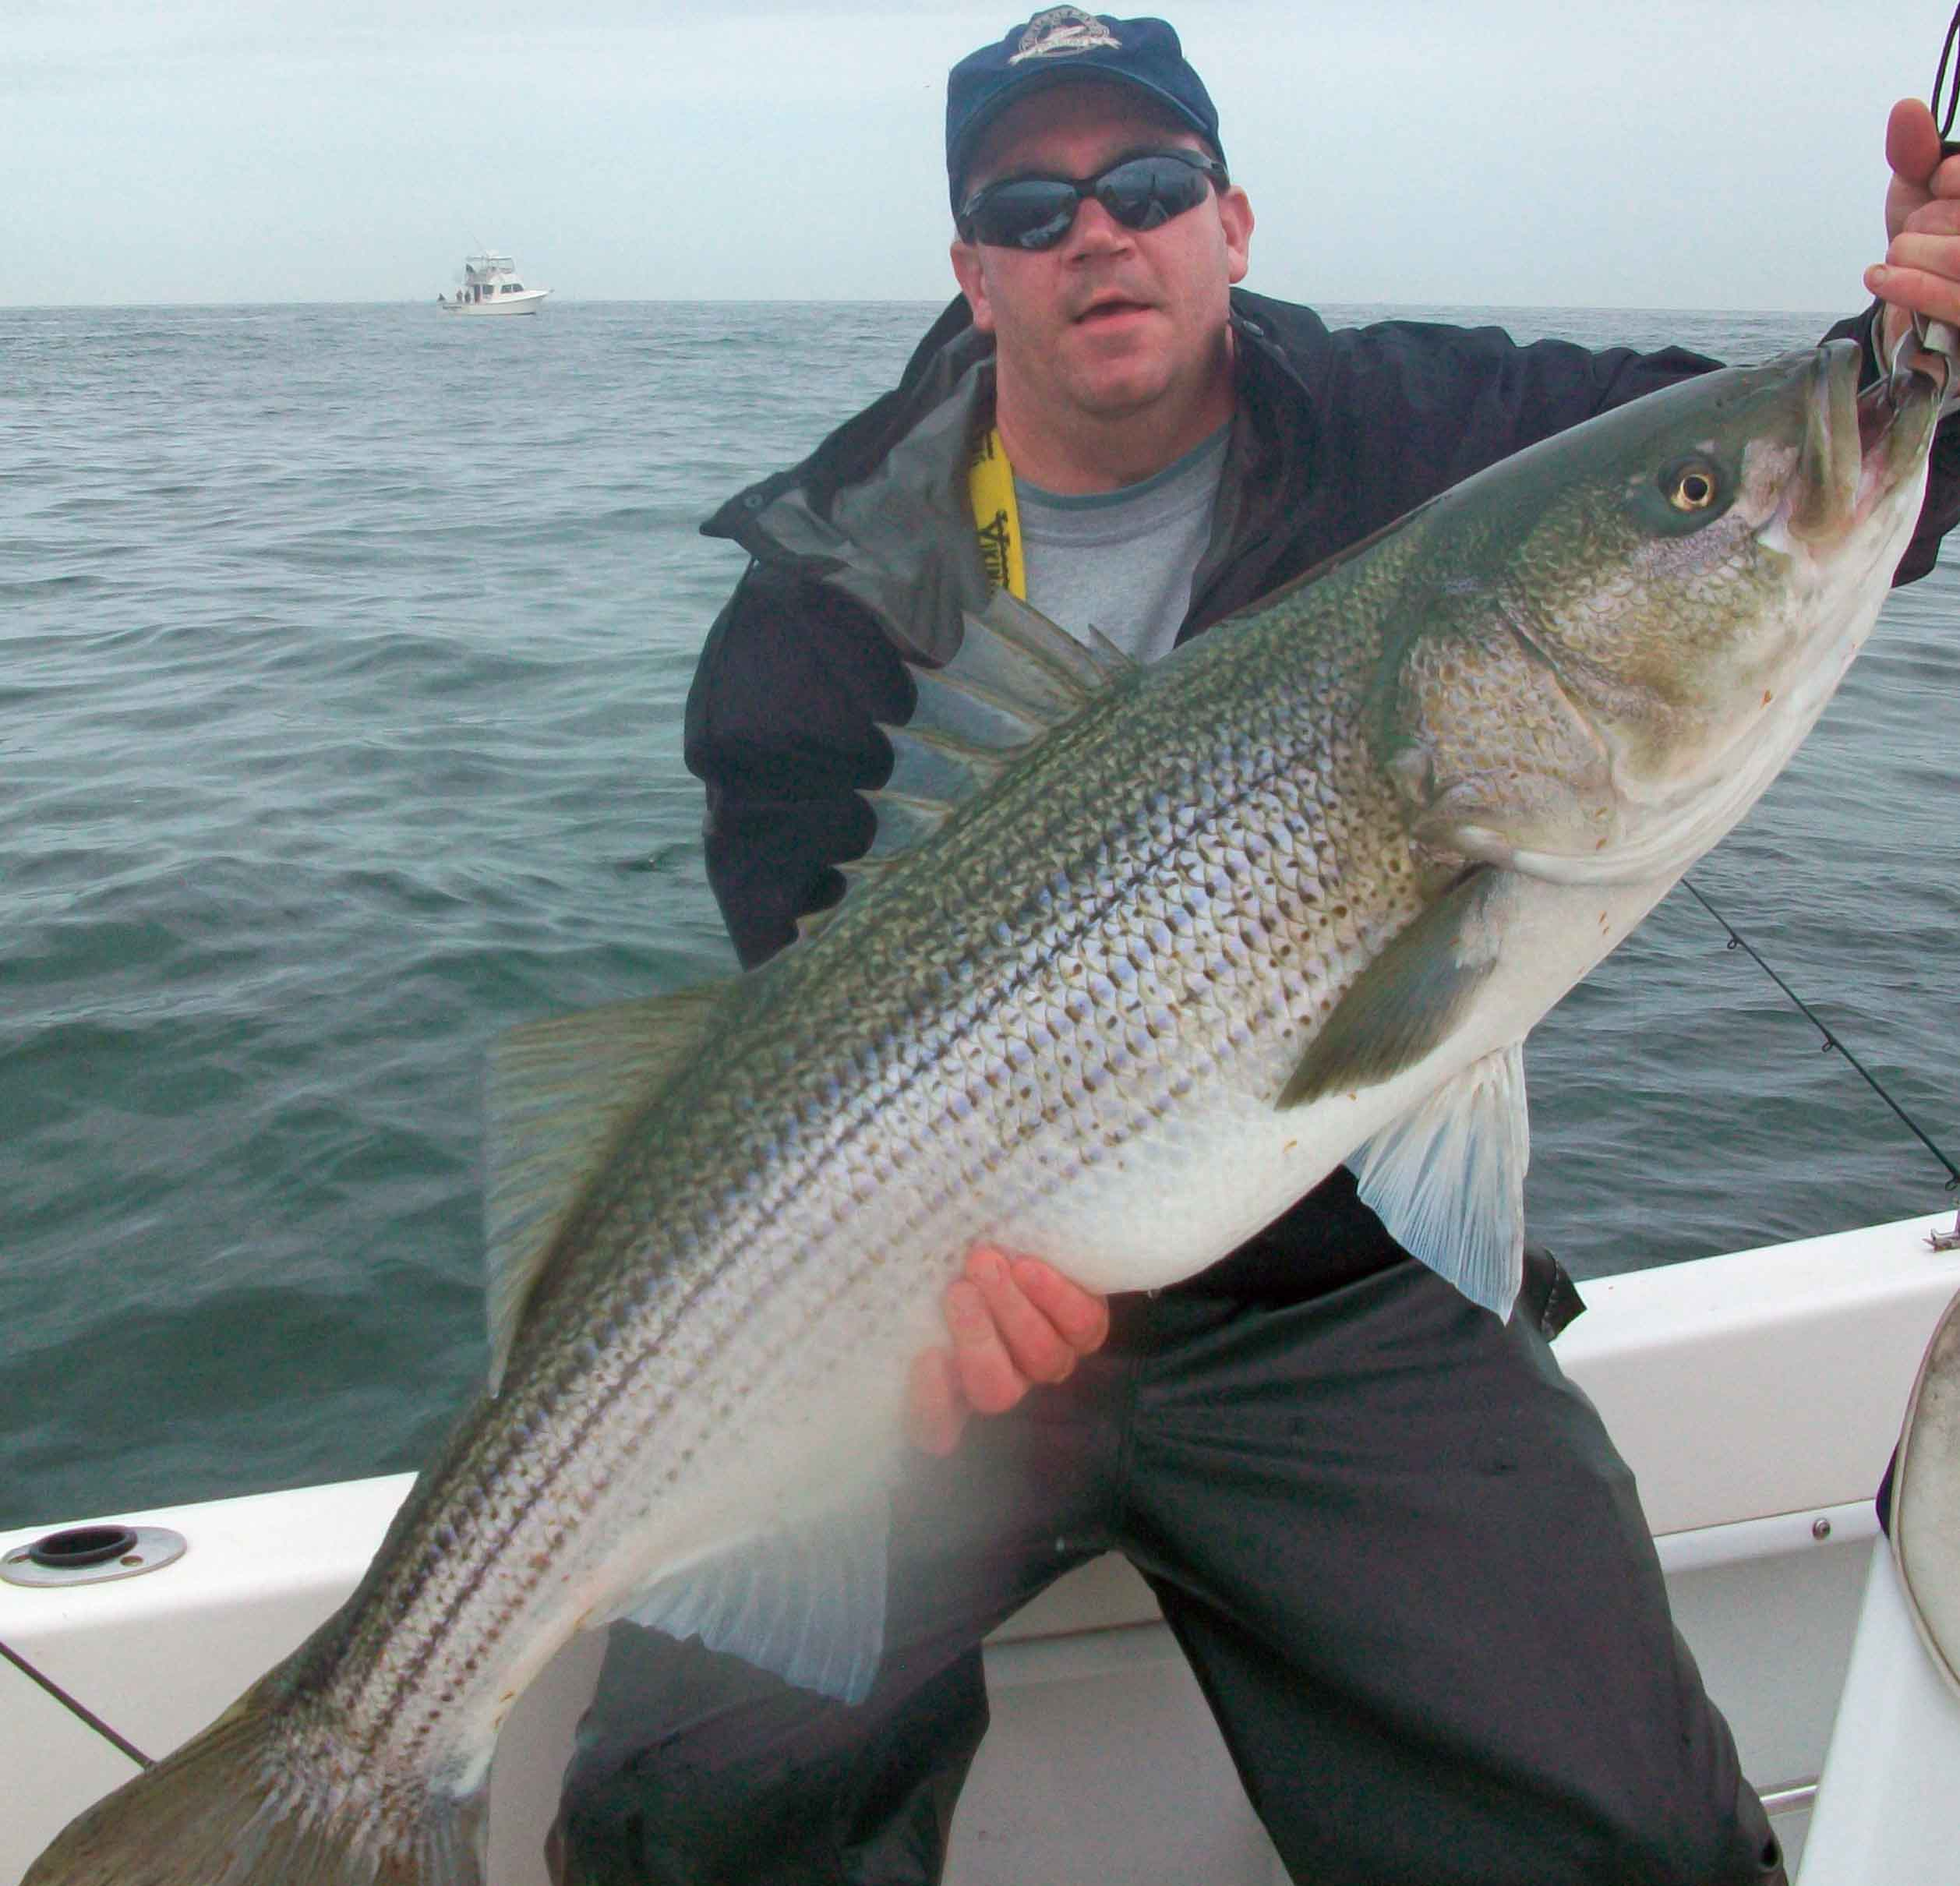 Atlantic City Striped Bass Fishing, Do AC, Brigantine Striped Bass Fishing,